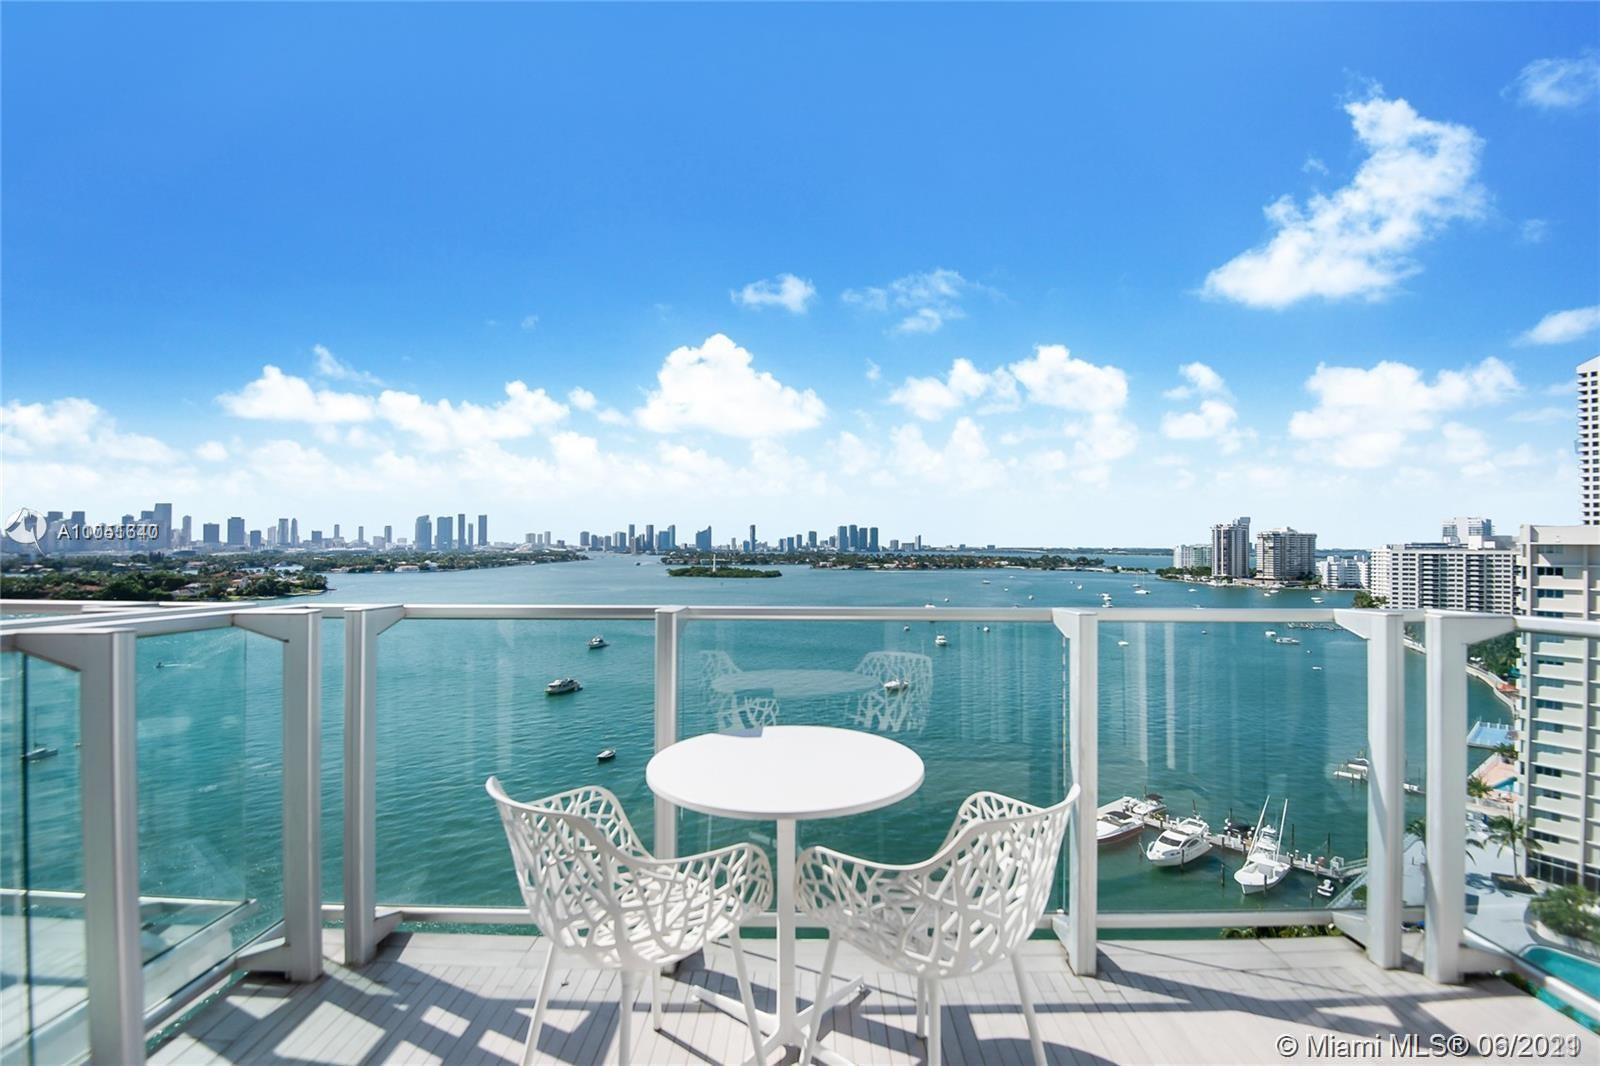 PENTHOUSE suite residence in the famous Mondrian South Beach. Fully Furnished & TURNKEY with a BAYFRONT BALCONY and Breathtaking Intracoastal, City and Sunset views. This unit allows AIRBNB, OR HANDS FREE CONDO-HOTEL PROGRAM. Rents from $270-$850 per night. The building just completed a $20 million renovation in the lobbies and pool areas that was featured in Haute Living Magazine. One of the most significant changes to the property is the new indoor-outdoor bar and Baia Beach Club. Amenities include: indoor/outdoor bar, Baia Beach Club, HIS AND HER SPA, 24-H GYM WITH STUNNING BAY VIEWS, CONCIERGE SERVICE, VALET PARKING, INDOOR- AND OUTDOOR RESTAURANTS AND BARS. MUST SEE!